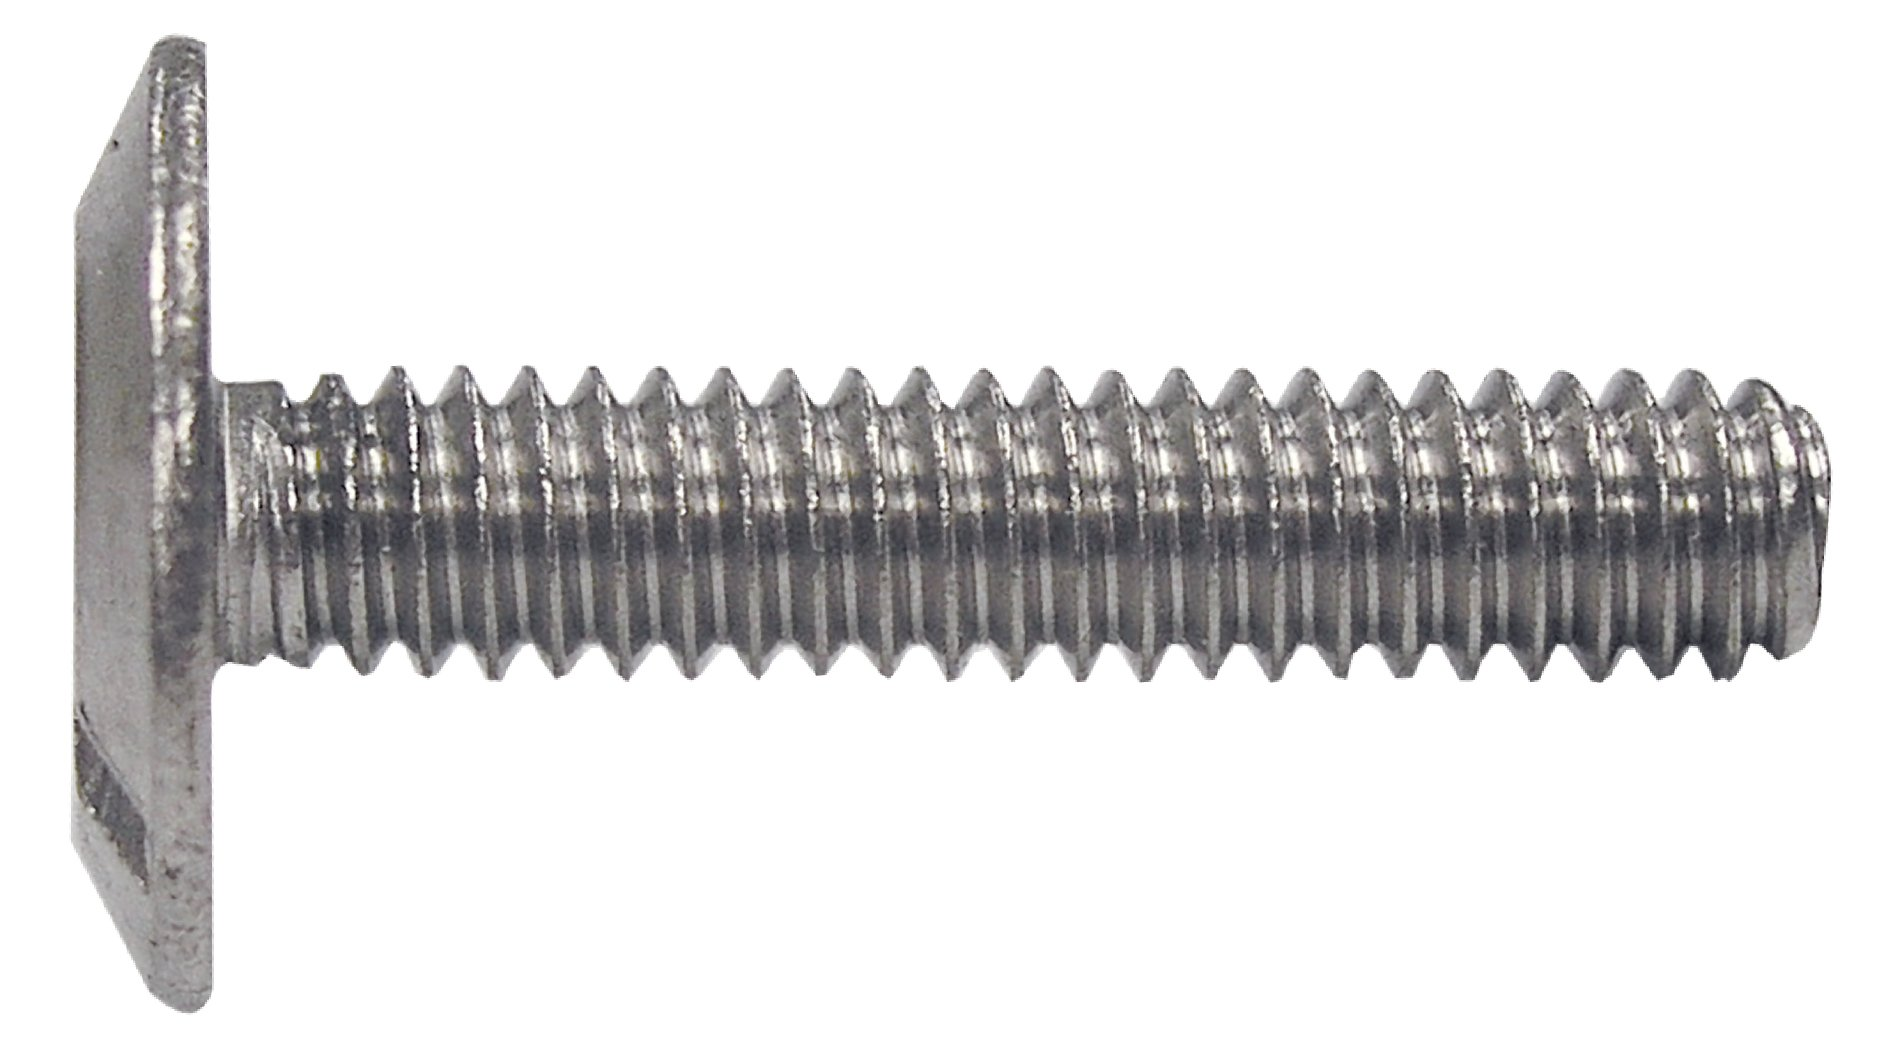 The Hillman Group 831492 1/4 X 1-1/4-Inch Stainless Steel Hurricane Bolt, 100-Pack